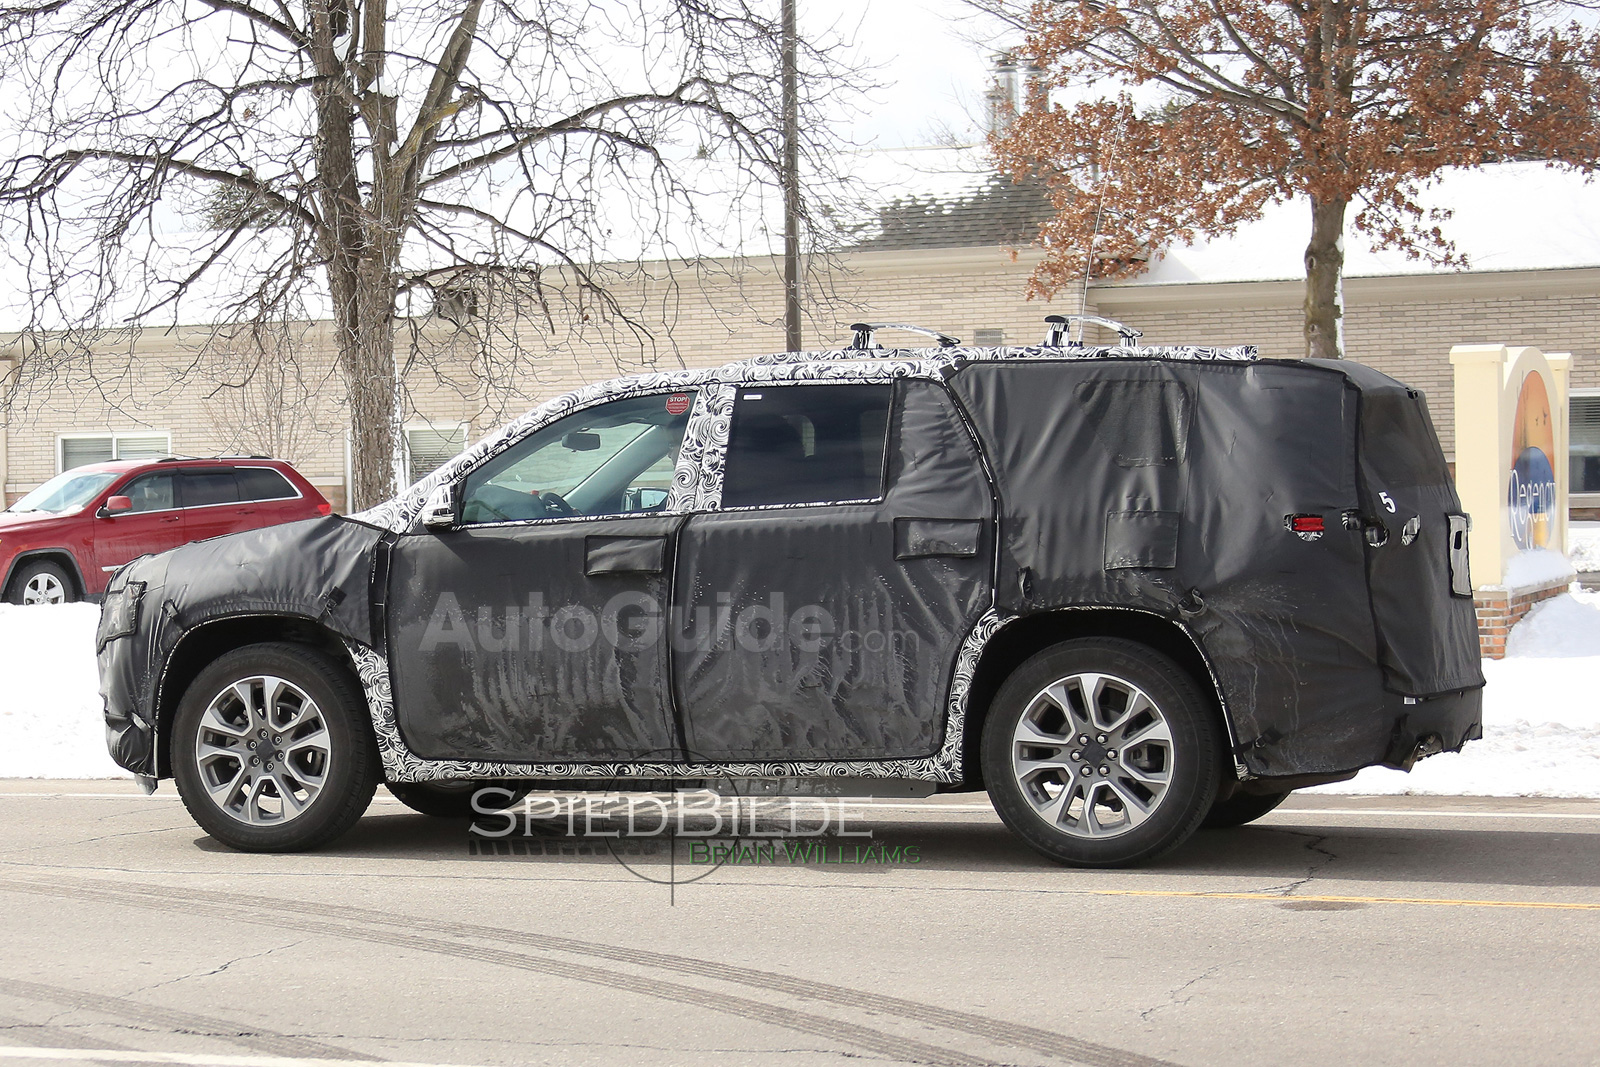 Cadillac Xt7 Spy Photos 07